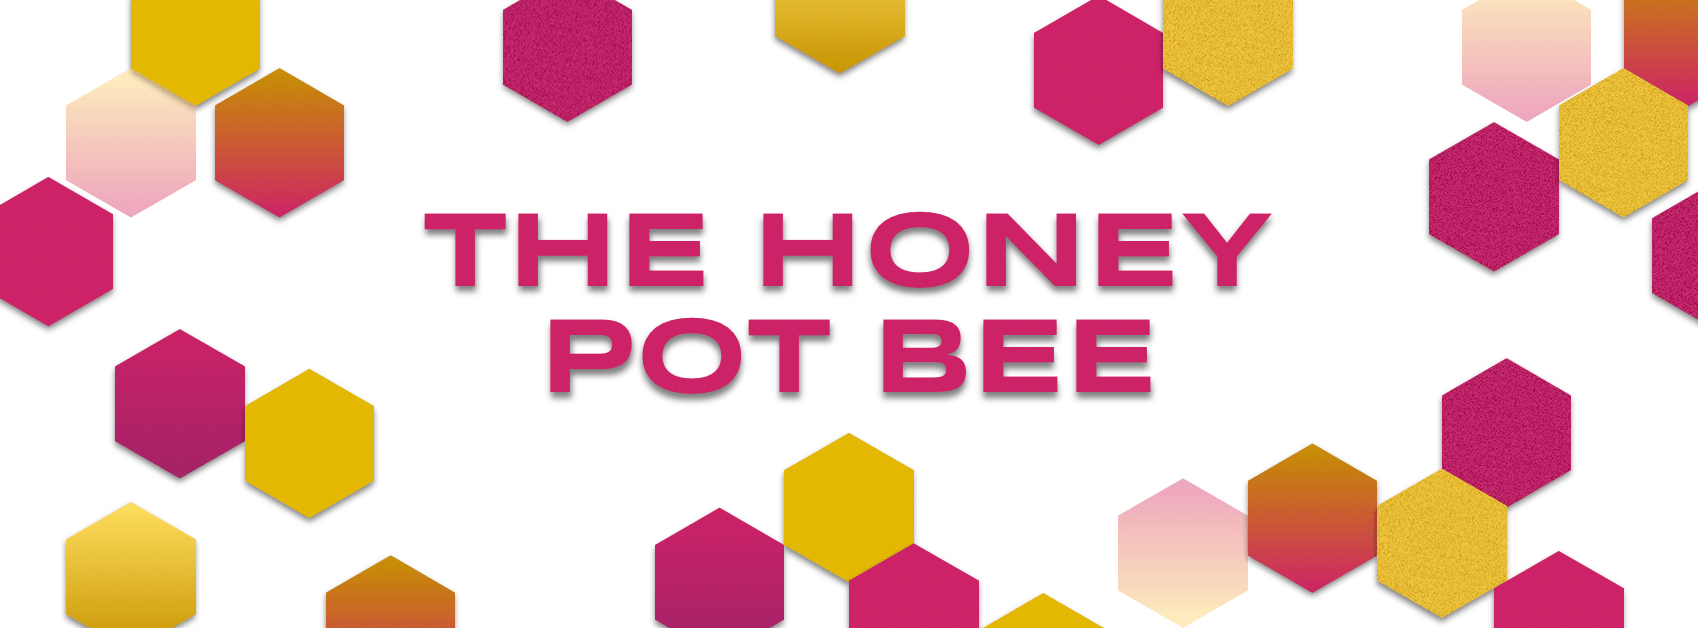 the-honey-pot-bee-banner